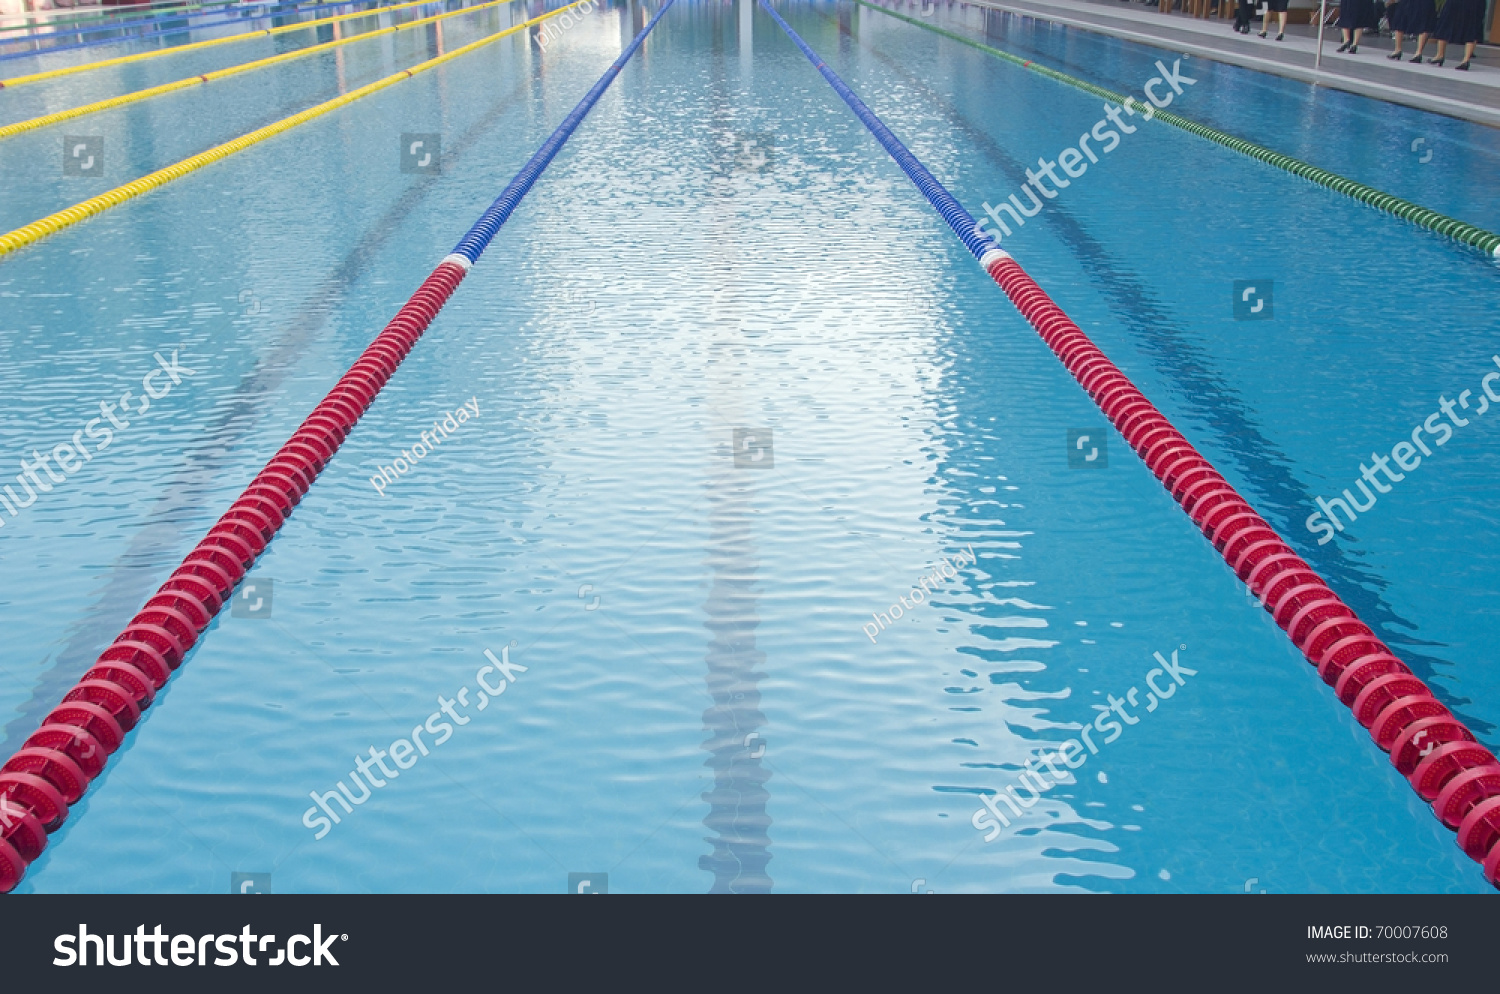 Outdoor Swimming Pool With Clearly Marked Lanes For Competitions Stock Photo 70007608